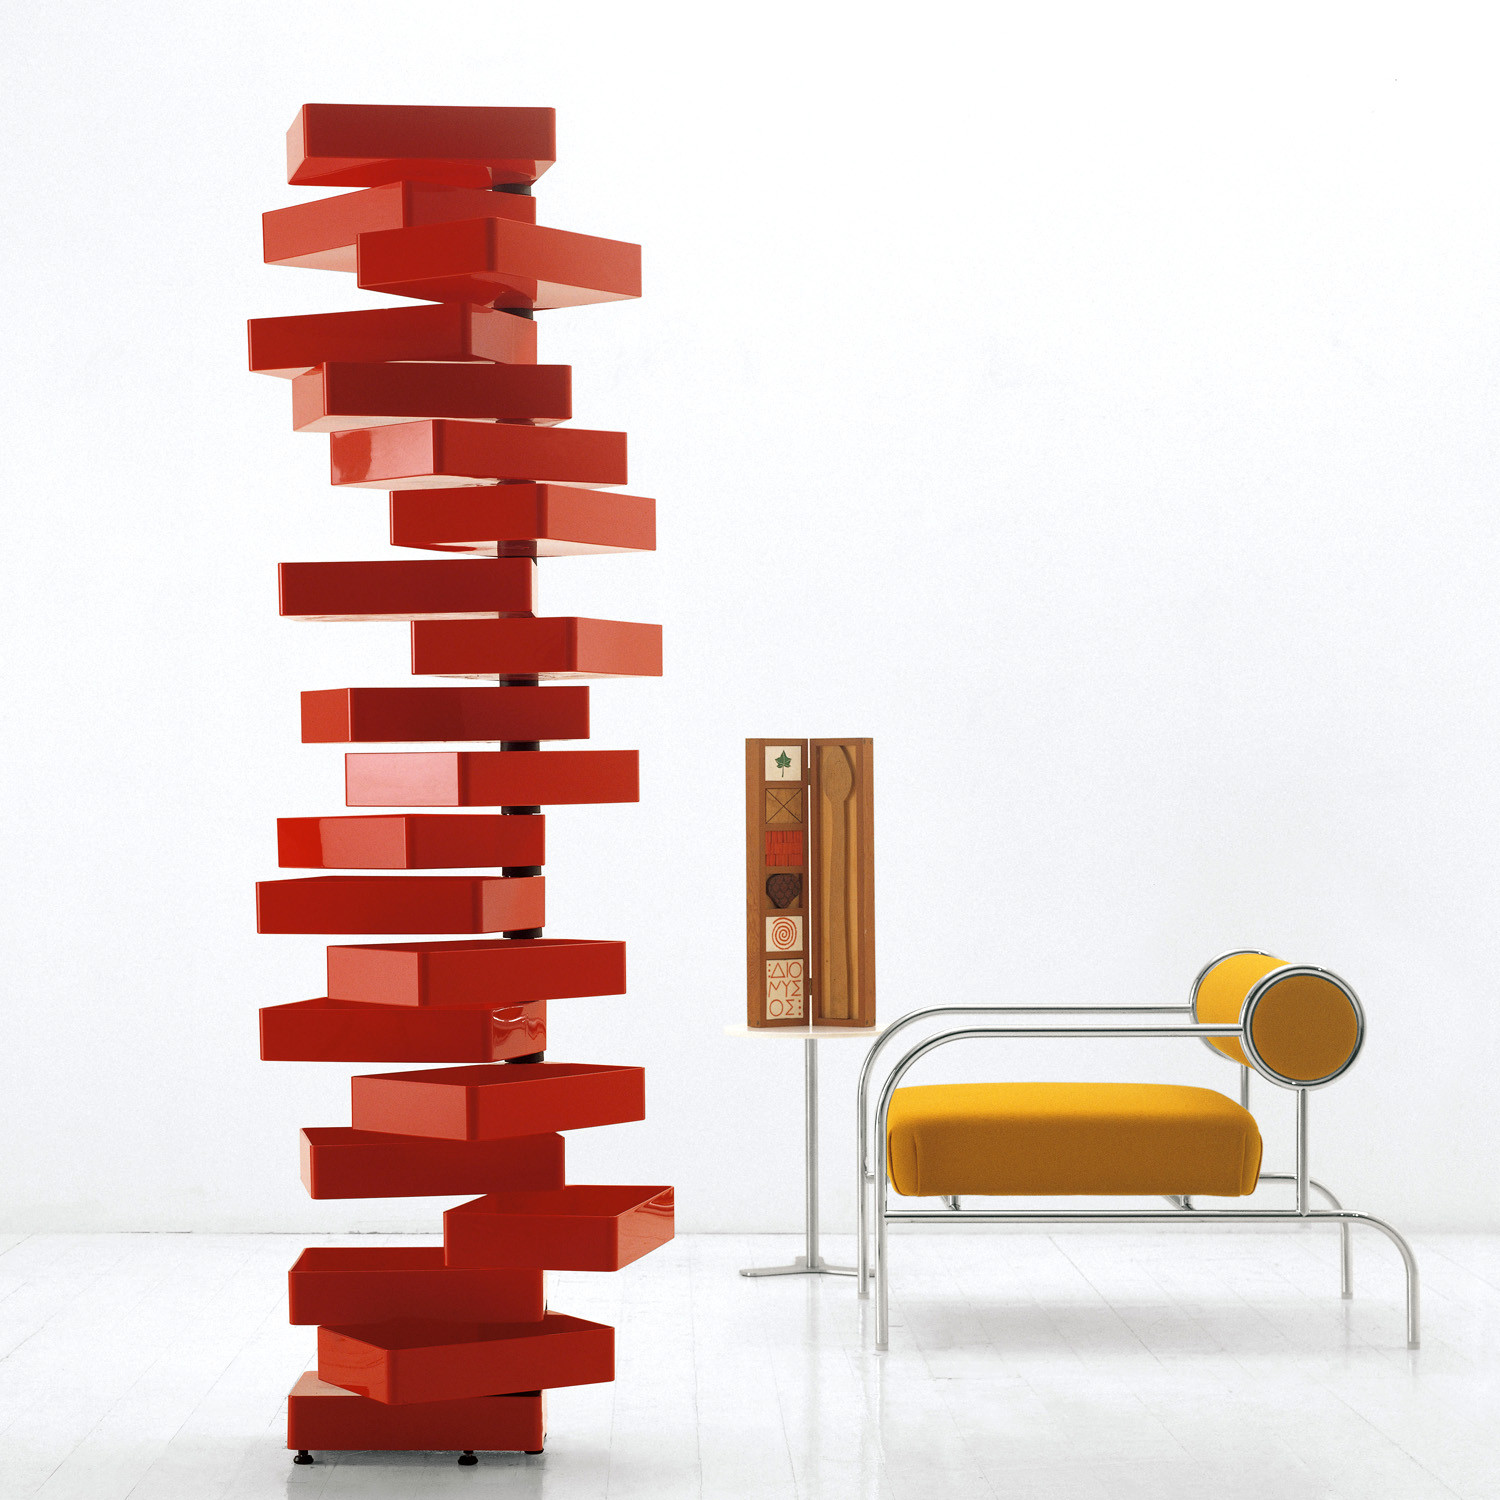 Revolving Chest of Drawers by Cappellini